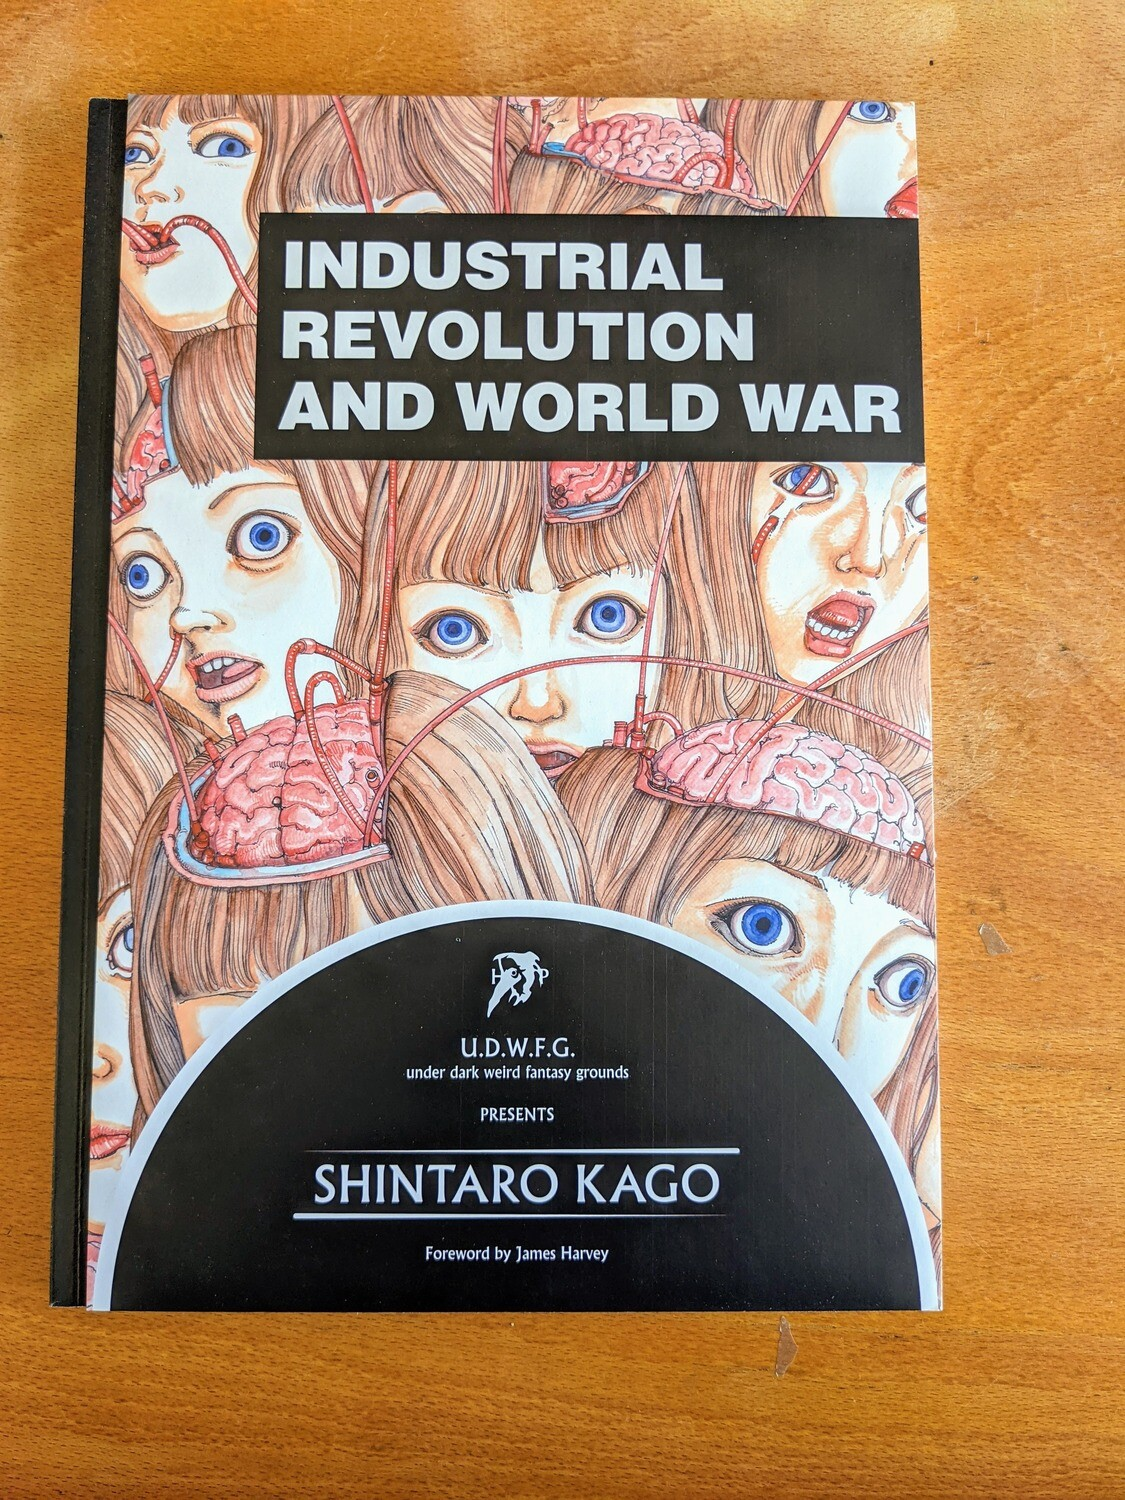 Industrial Revolution and World War par Shintaro Kago - Sans textes / Textless (limited edition 350 copies (digital printing))